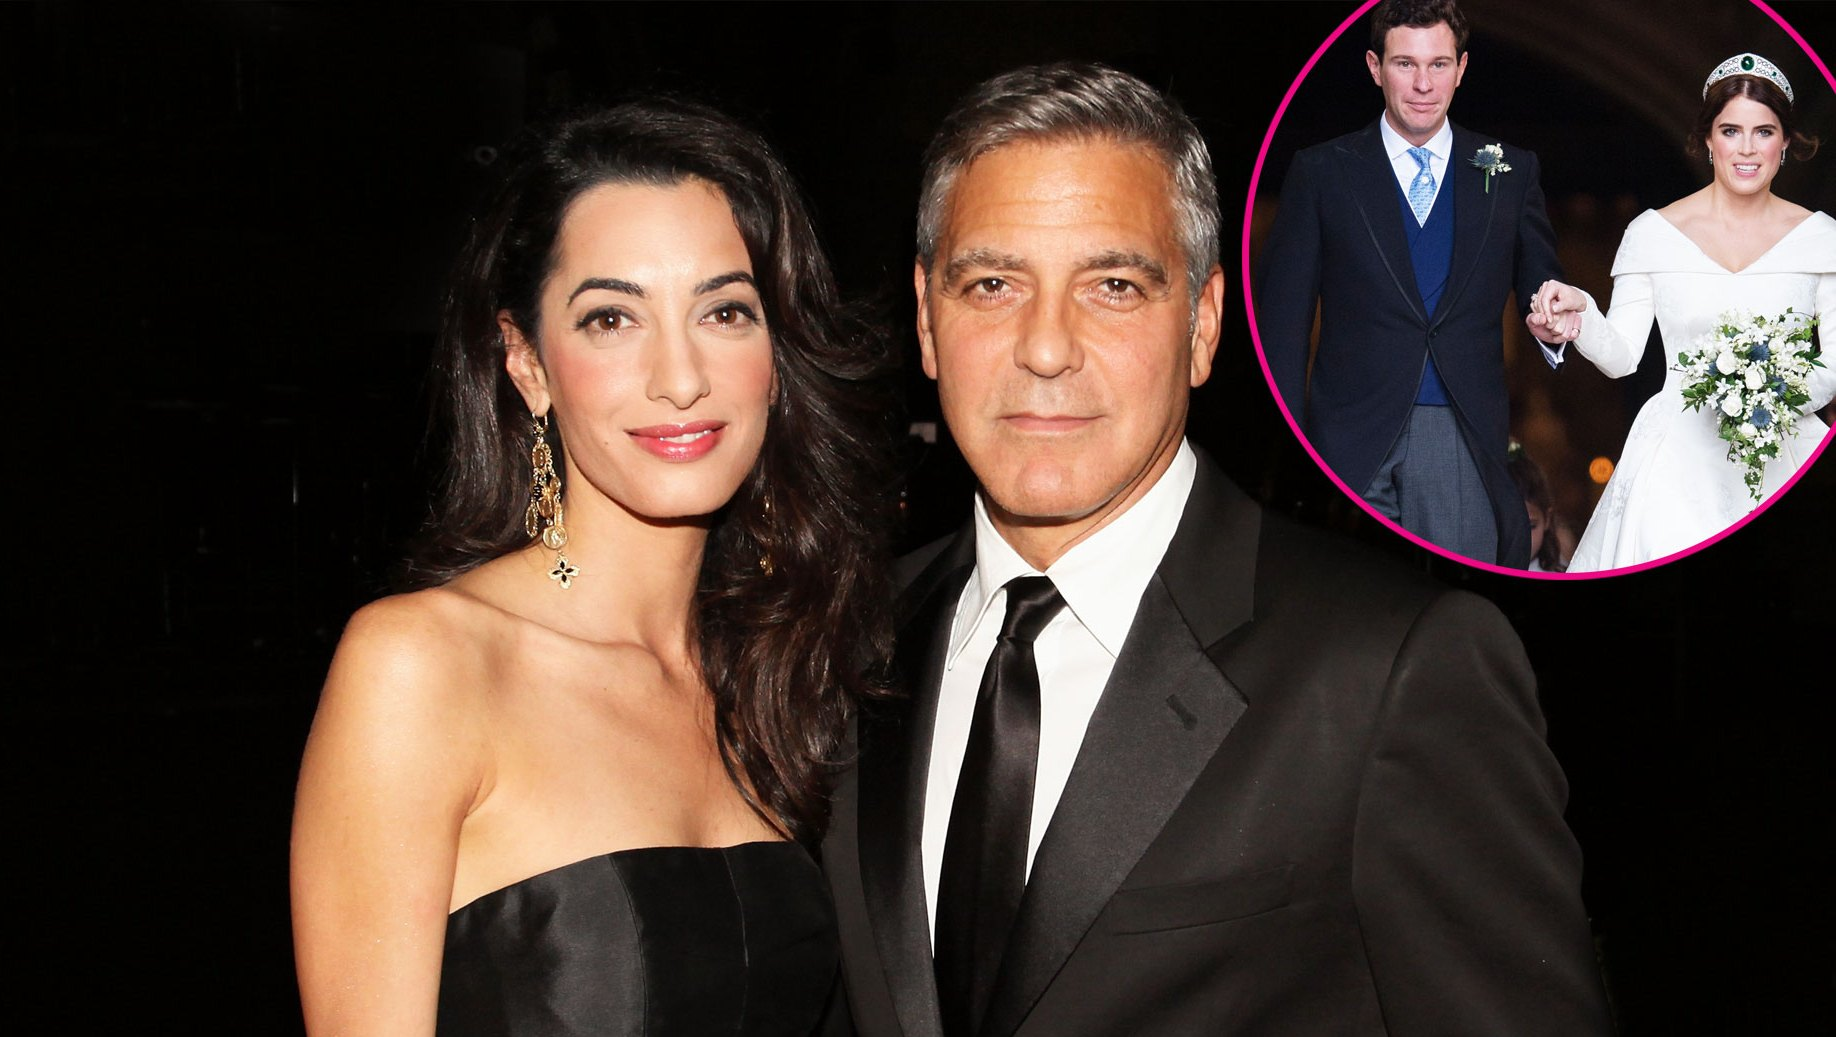 Amal and George Clooney with Jack Brooksbank and Princess Eugenie